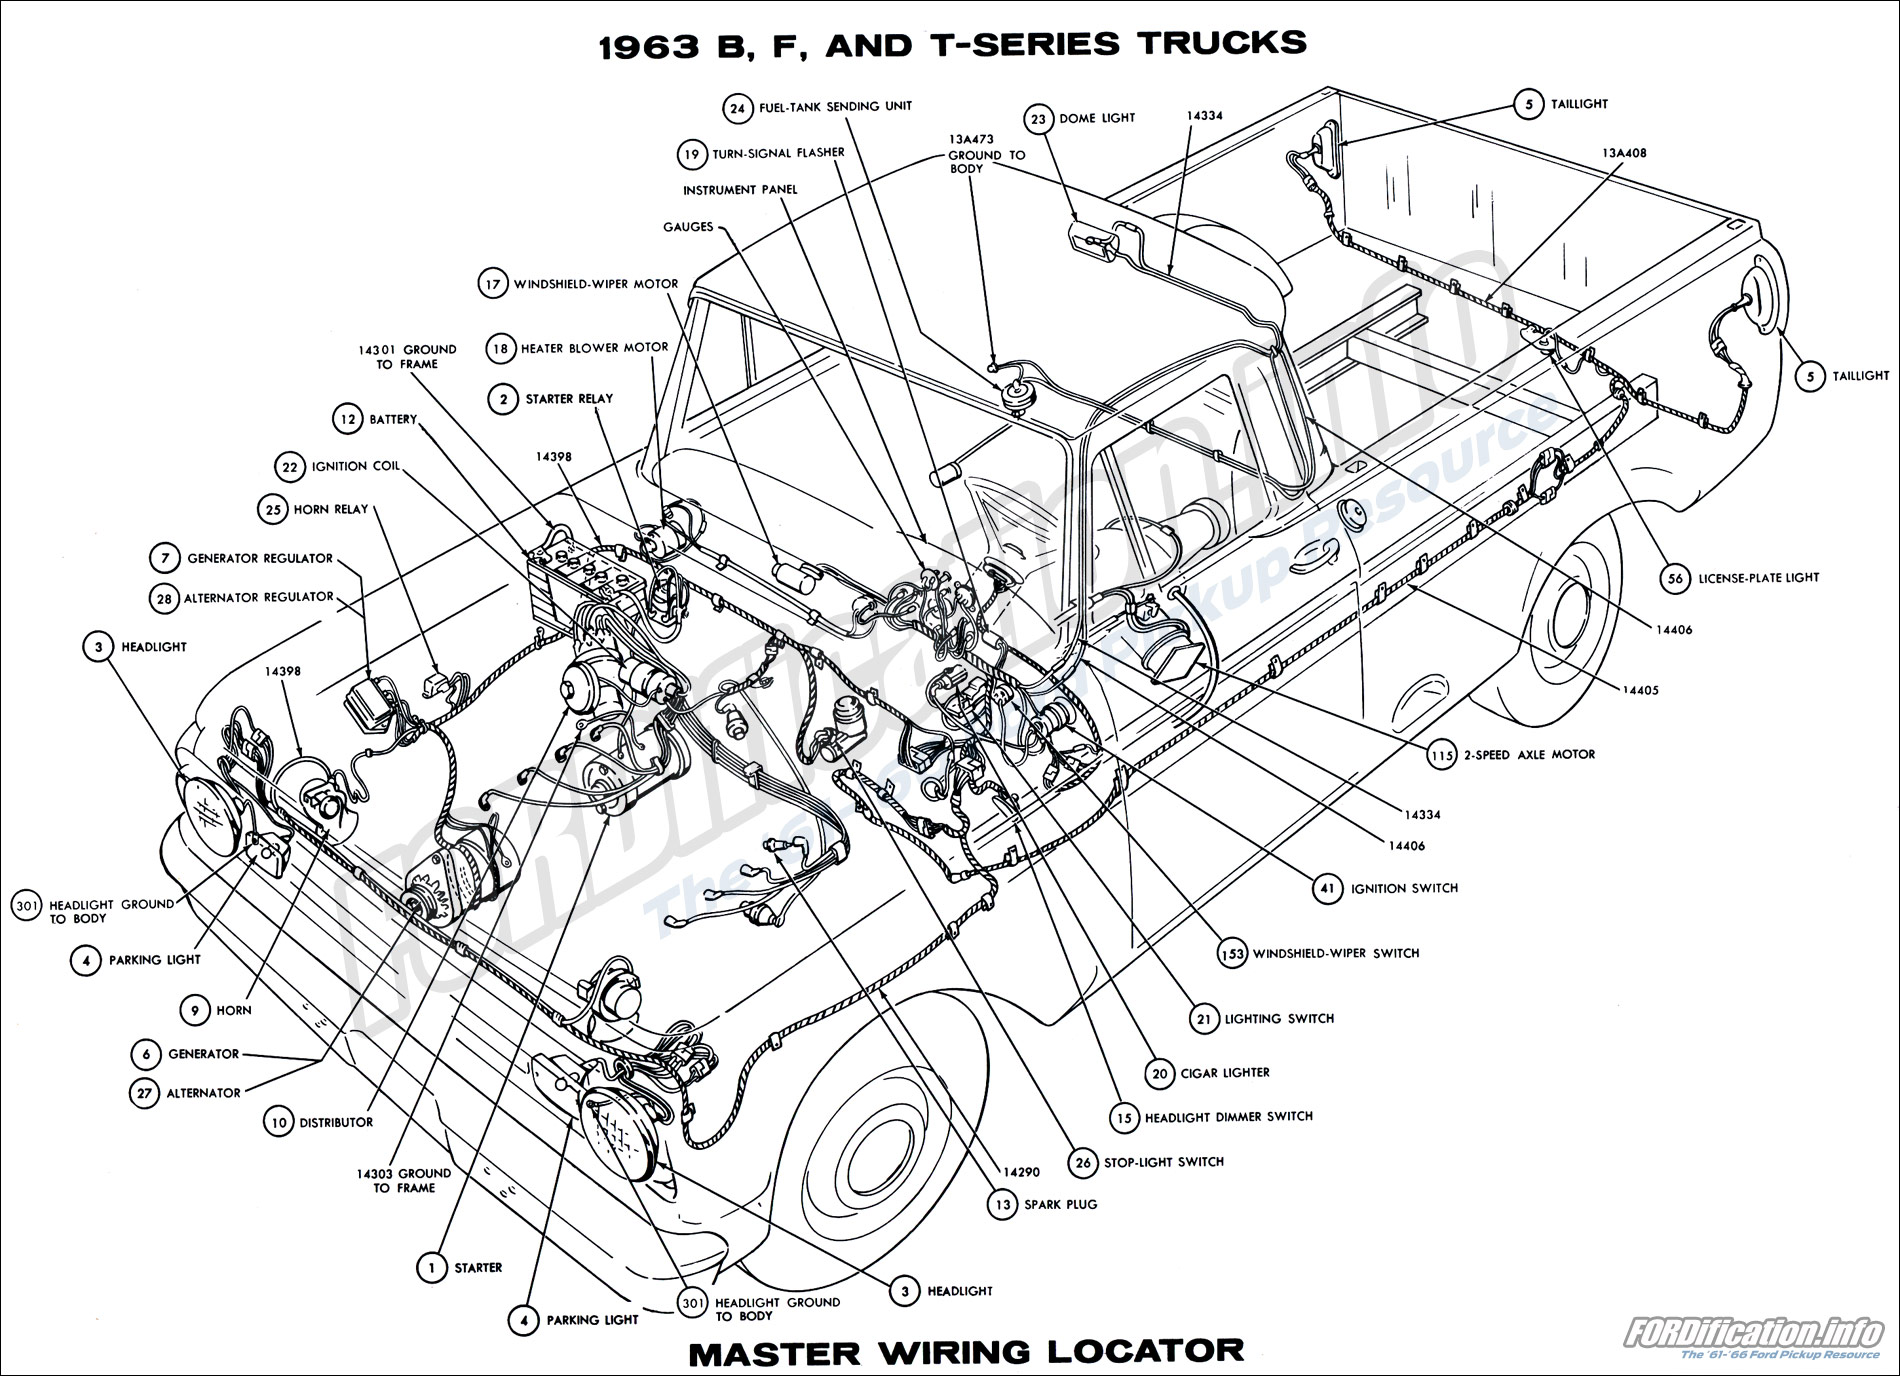 63masterlocator 1963 ford truck wiring diagrams fordification info the '61 '66 1963 ford wiring diagram at crackthecode.co